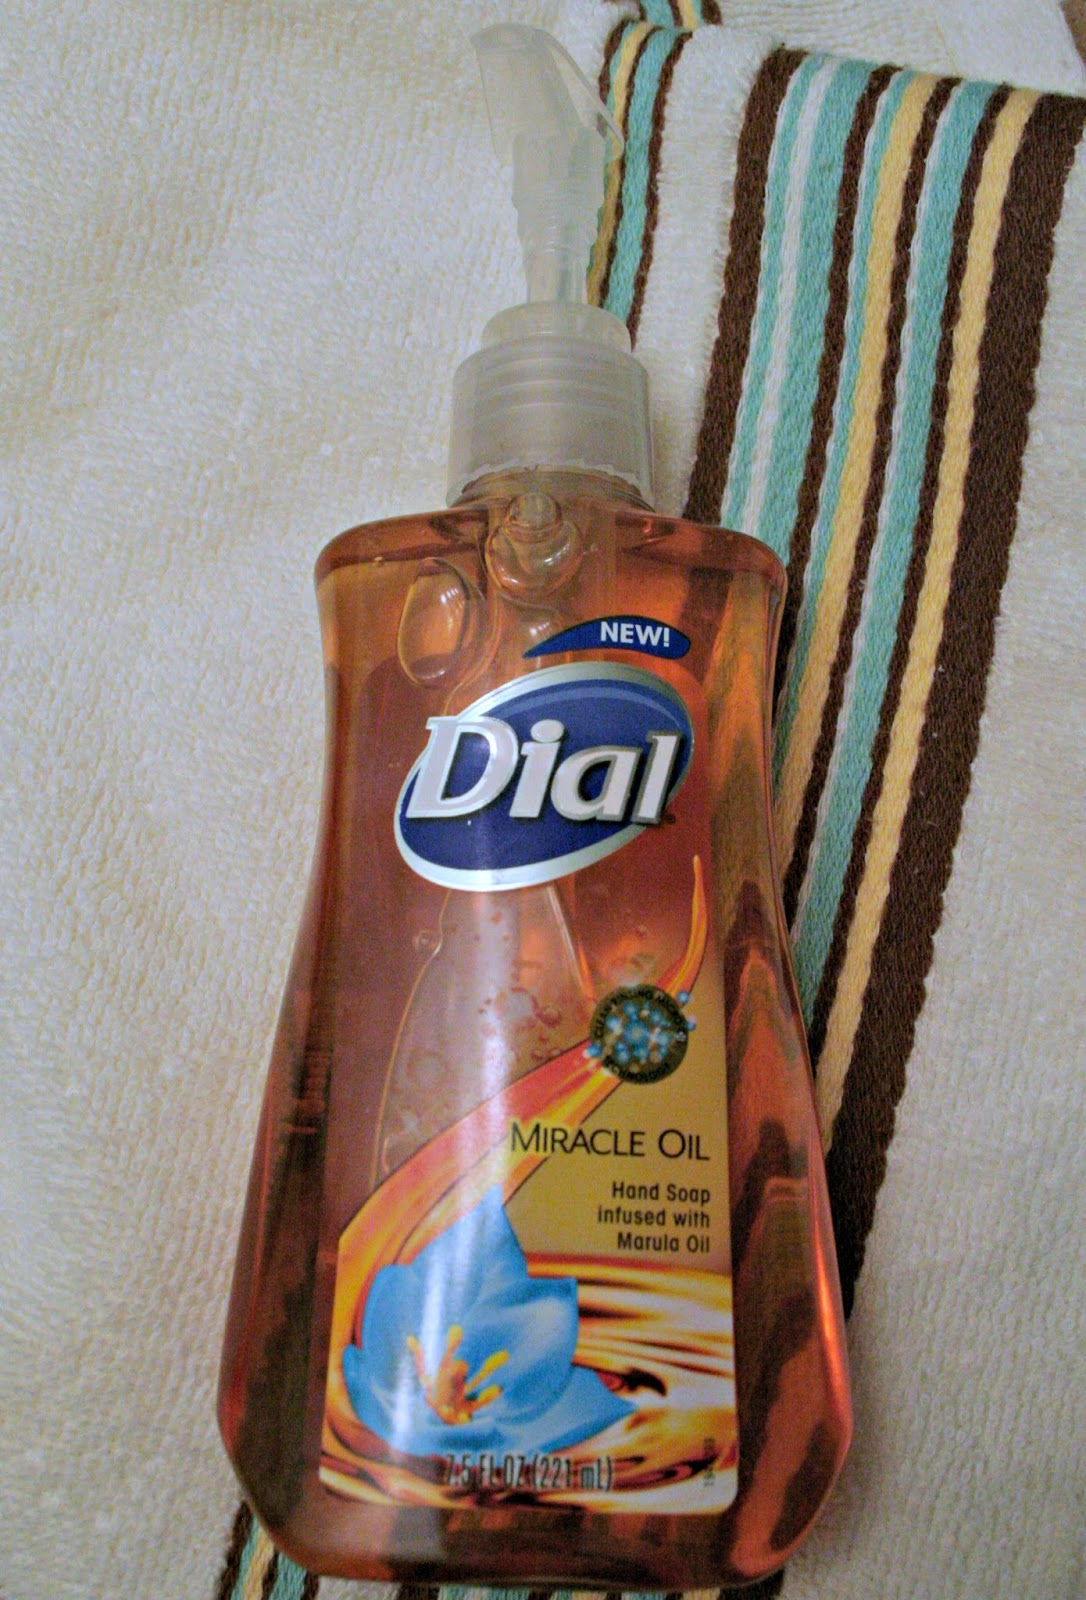 Dial Miracle Oil hand soap, Conditioning soap, giveaway, refreshing moisture hand soap, Deep cleansing hand soap